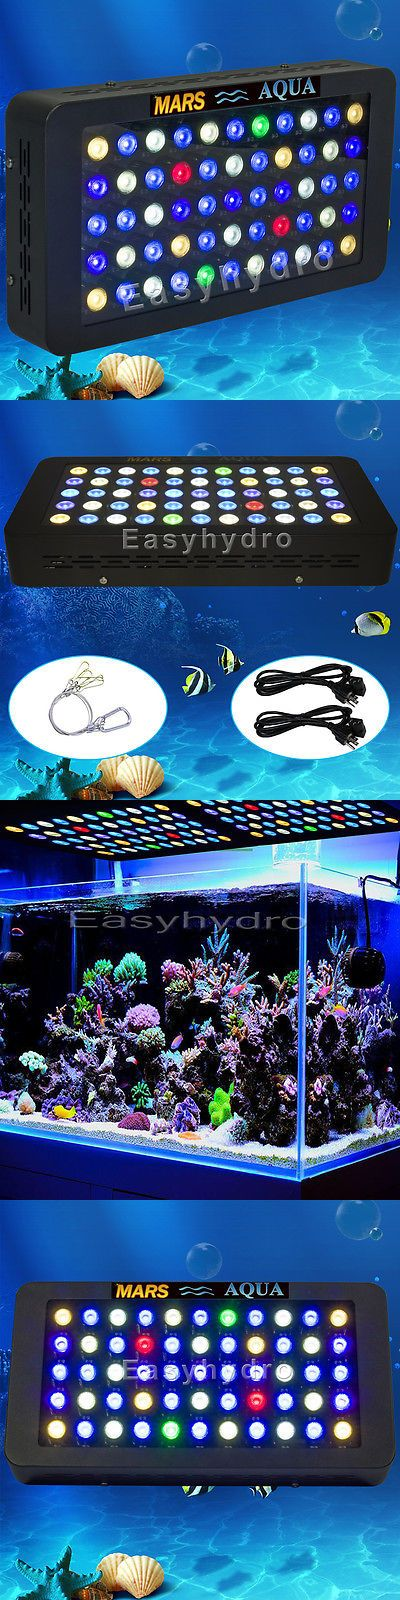 Animals Fish And Aquariums: Dimmable165w Led Aquarium Light Full Spectrum For Live Fish Tank Reef Coral Lamp BUY IT NOW ONLY: $94.98